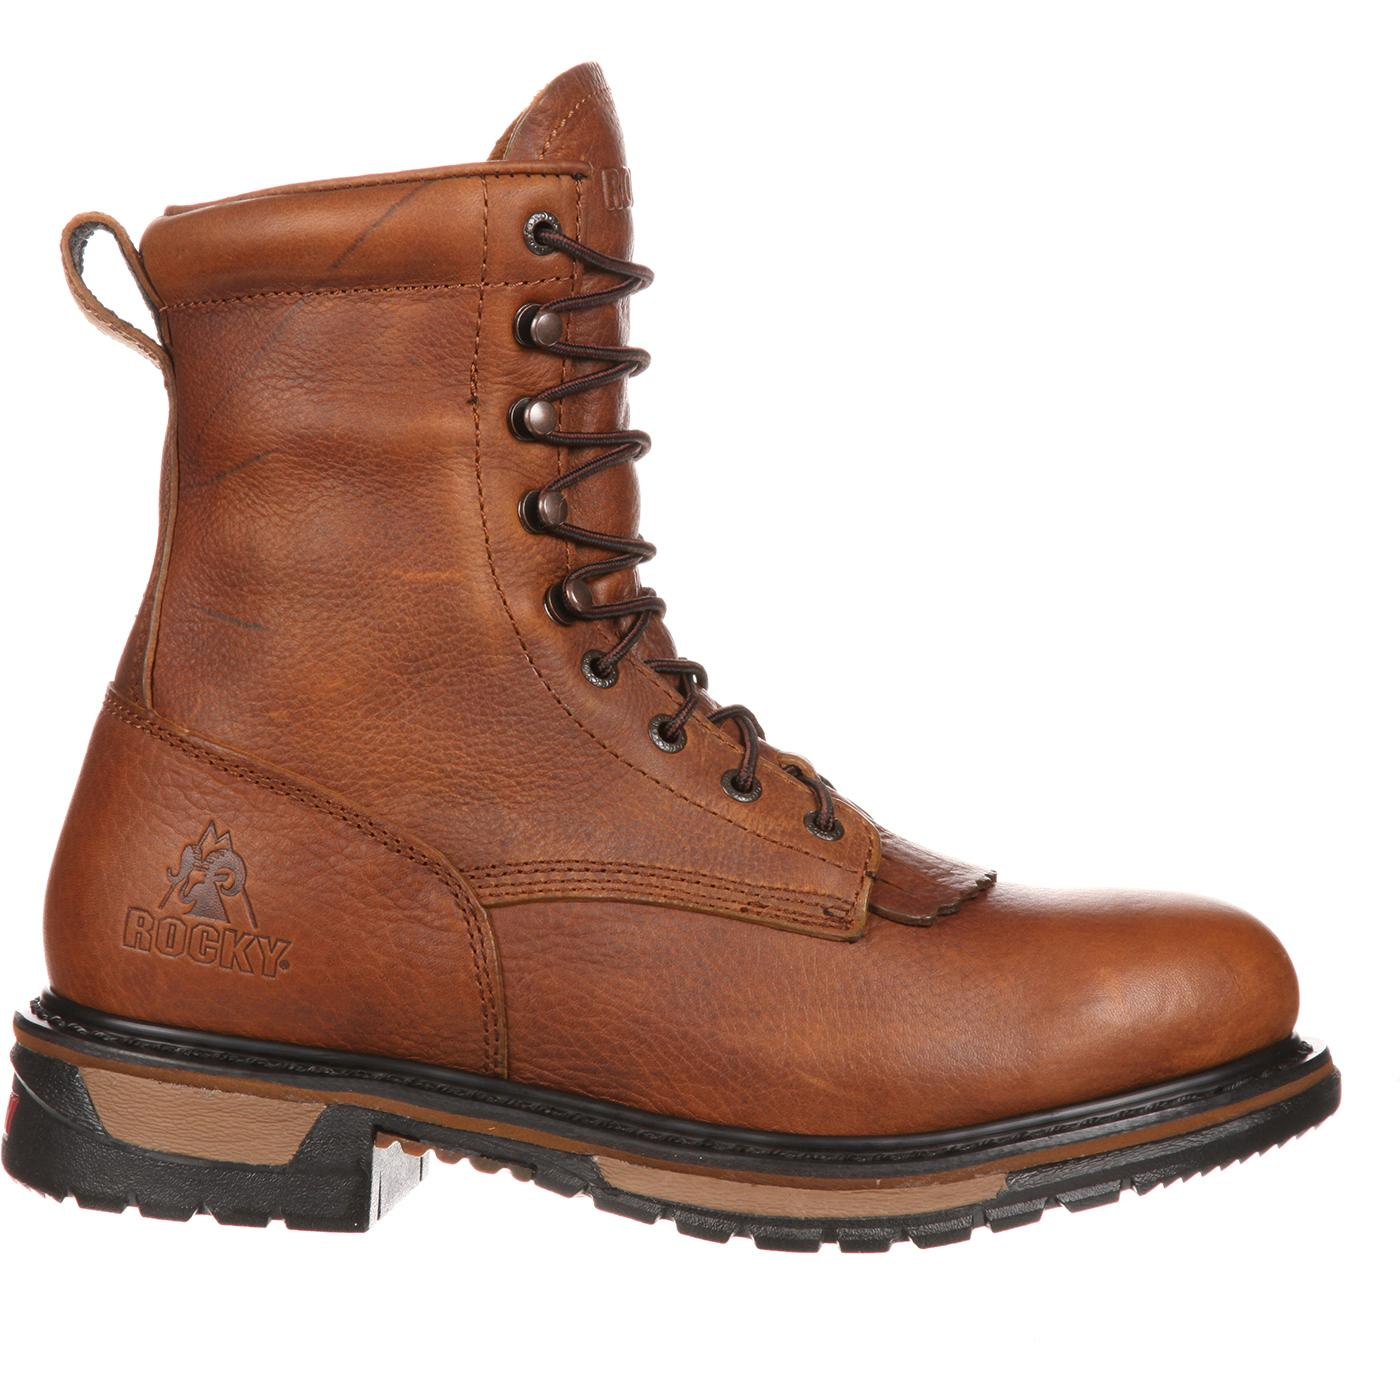 safety comforter eastgate in caterpillar mens chukka boots p sears honey work shoes bootsluxuriant design comfortable shoesbuy booties